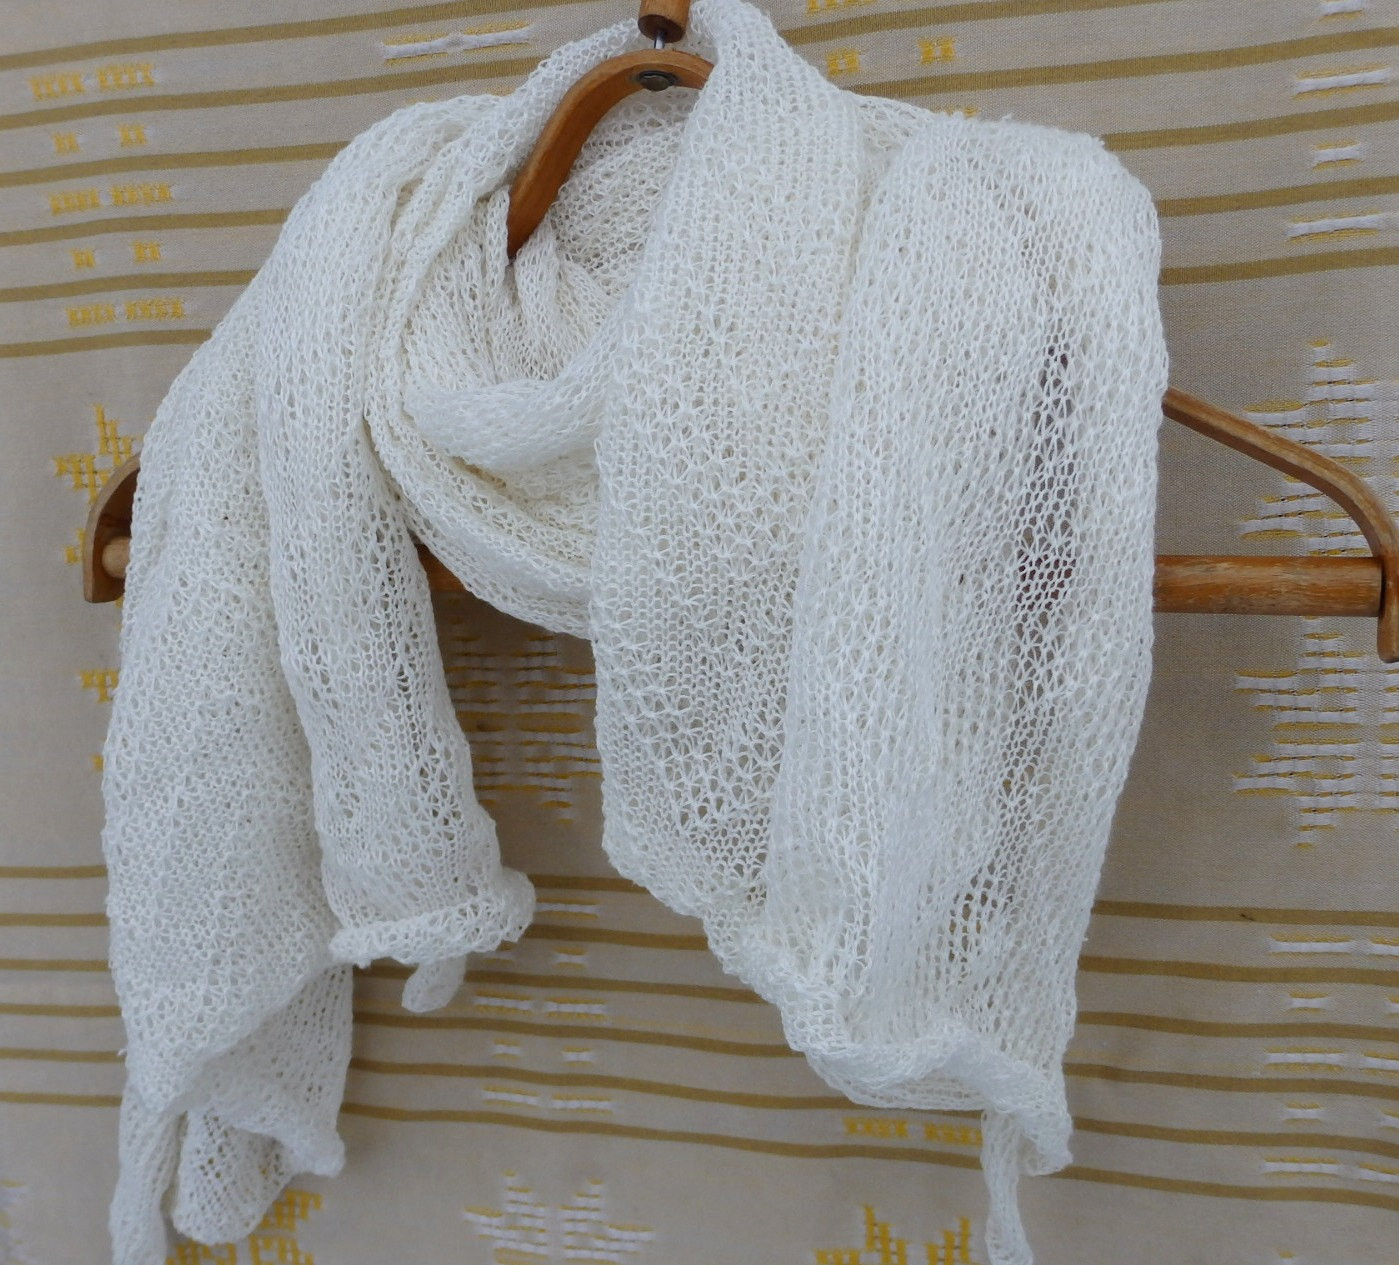 Luxury Knit Linen Scarf Knitted White Lace Shawl Knitting Wedding Knitted Wedding Shawl Of Awesome Wedding and Bridal Knitting Patterns Knitted Wedding Shawl